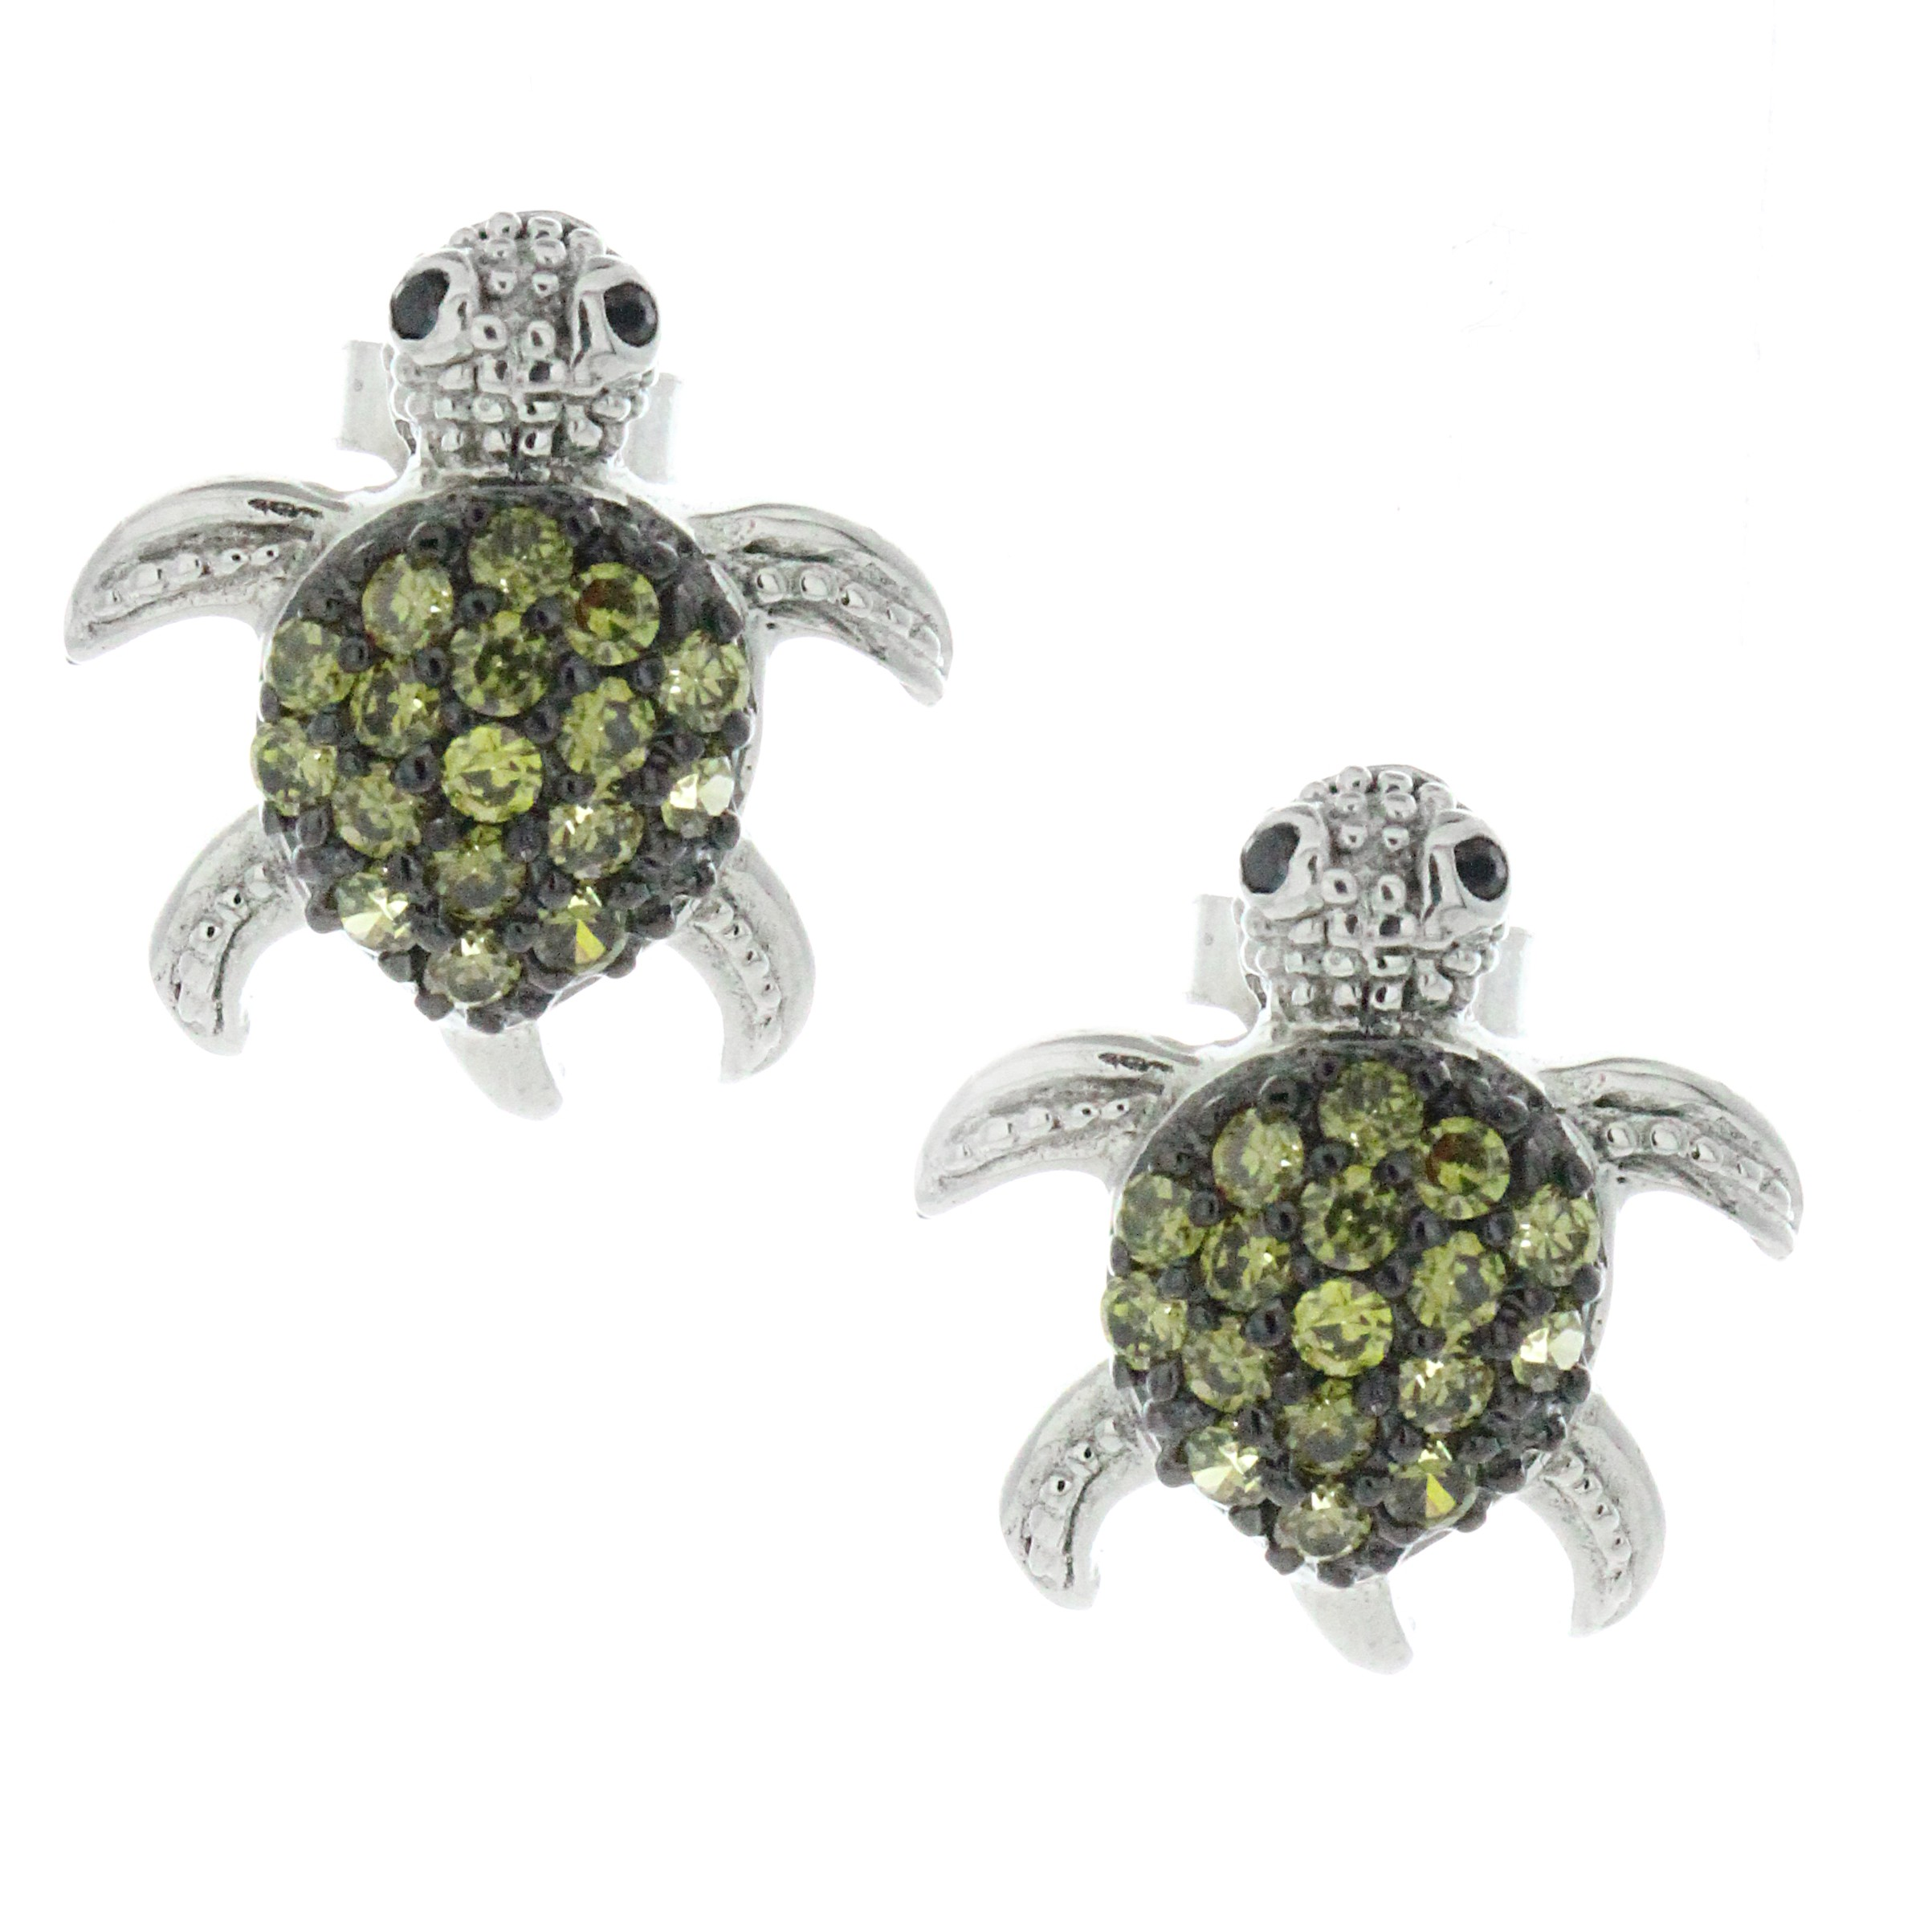 product ring hand fullxfull rings of stamped jewelry great fun adjustable toe turtle sturdy gift il piece very